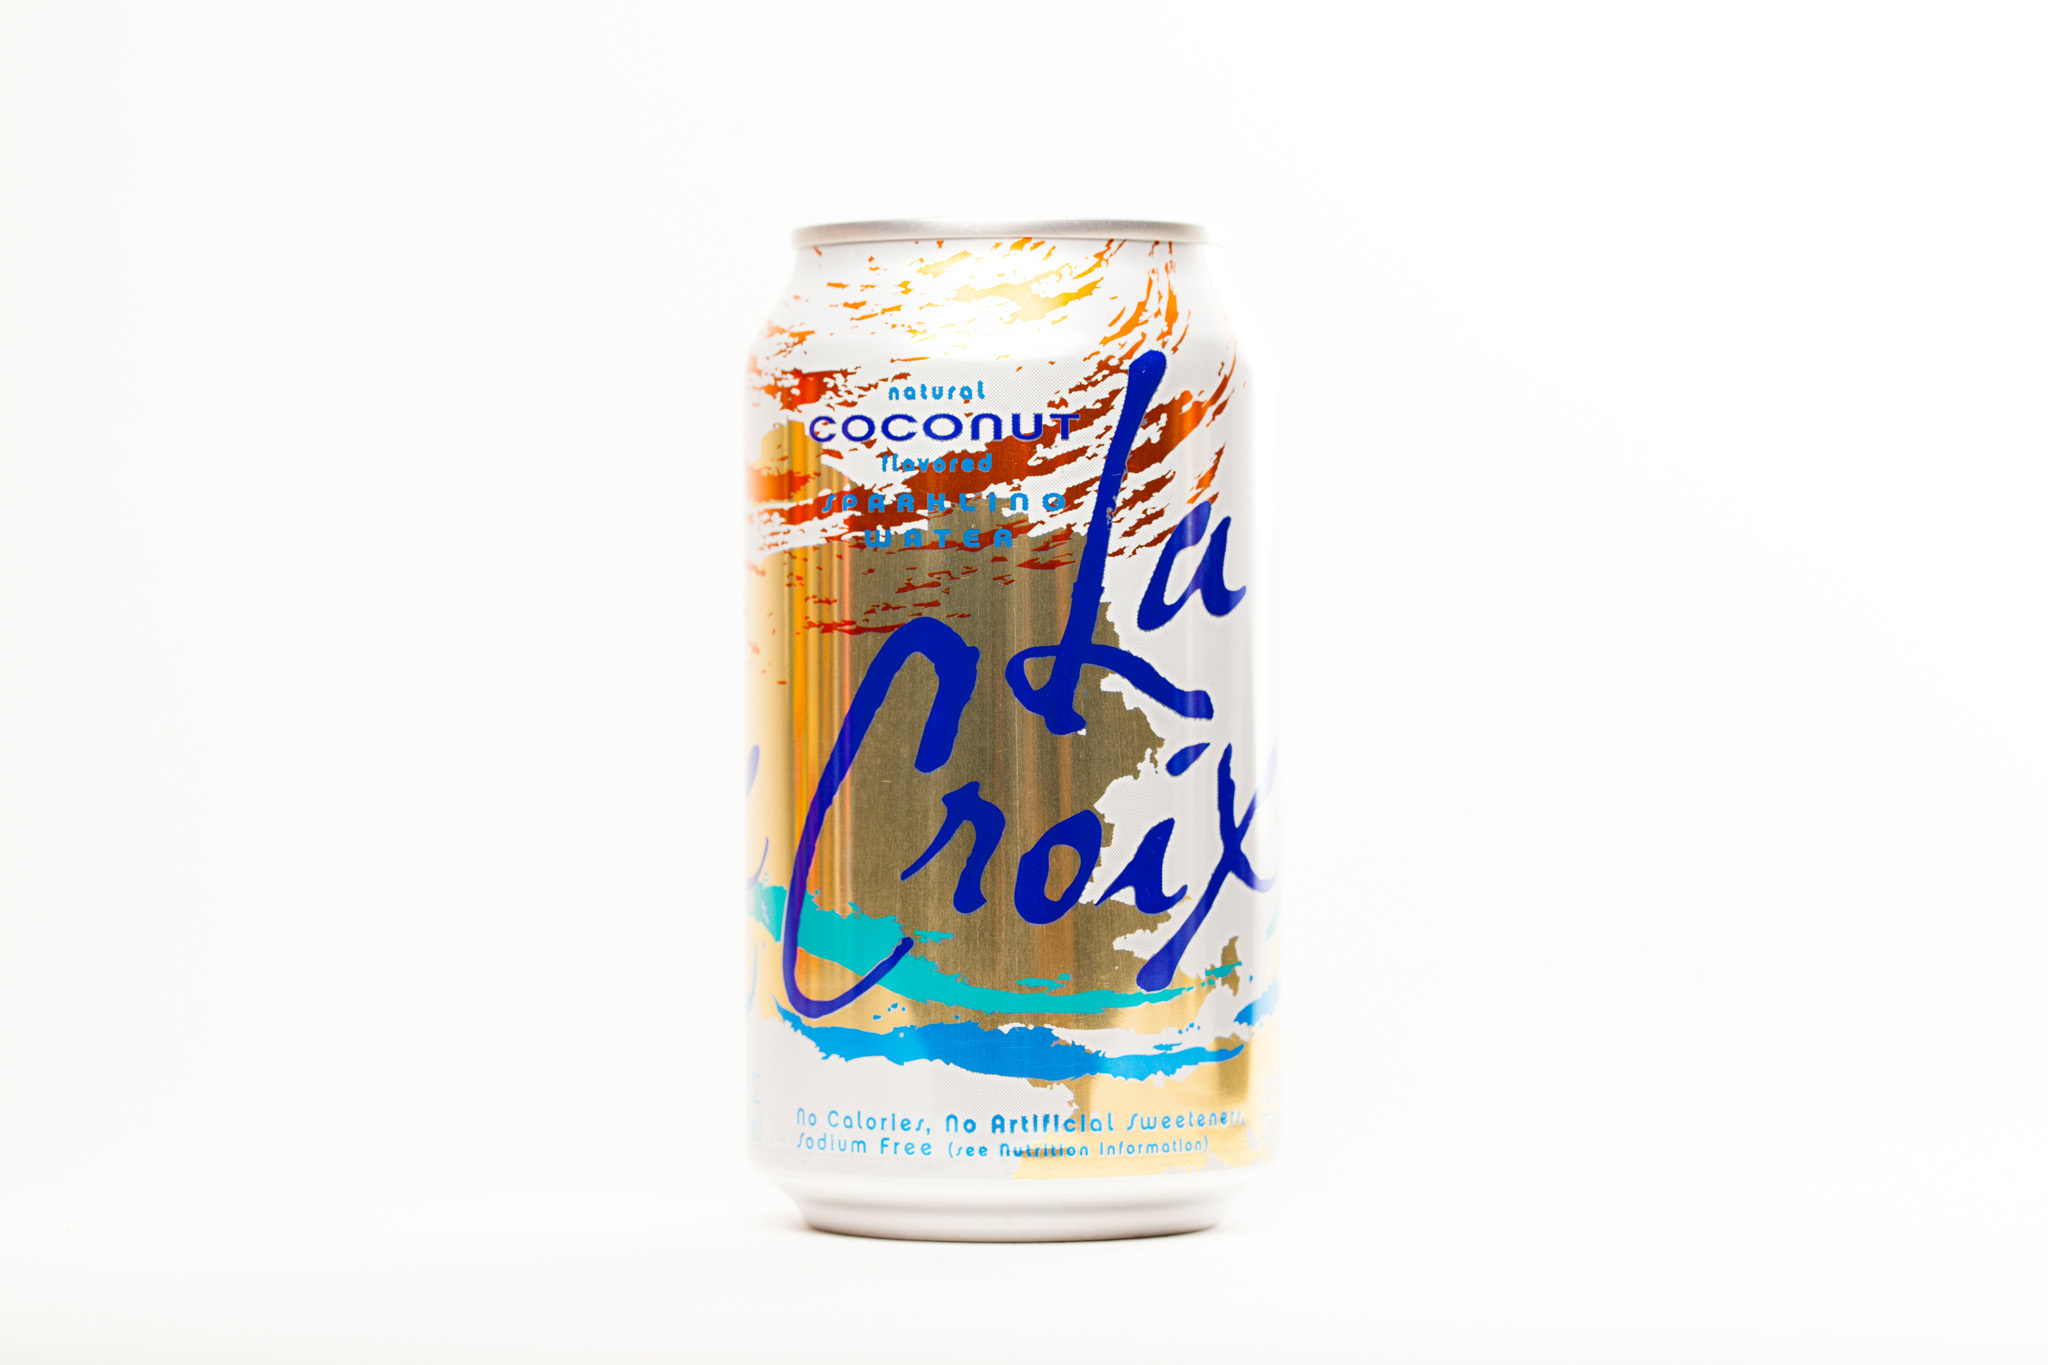 17 La Croix Sparkling Water Flavors Ranked From Best To Worst